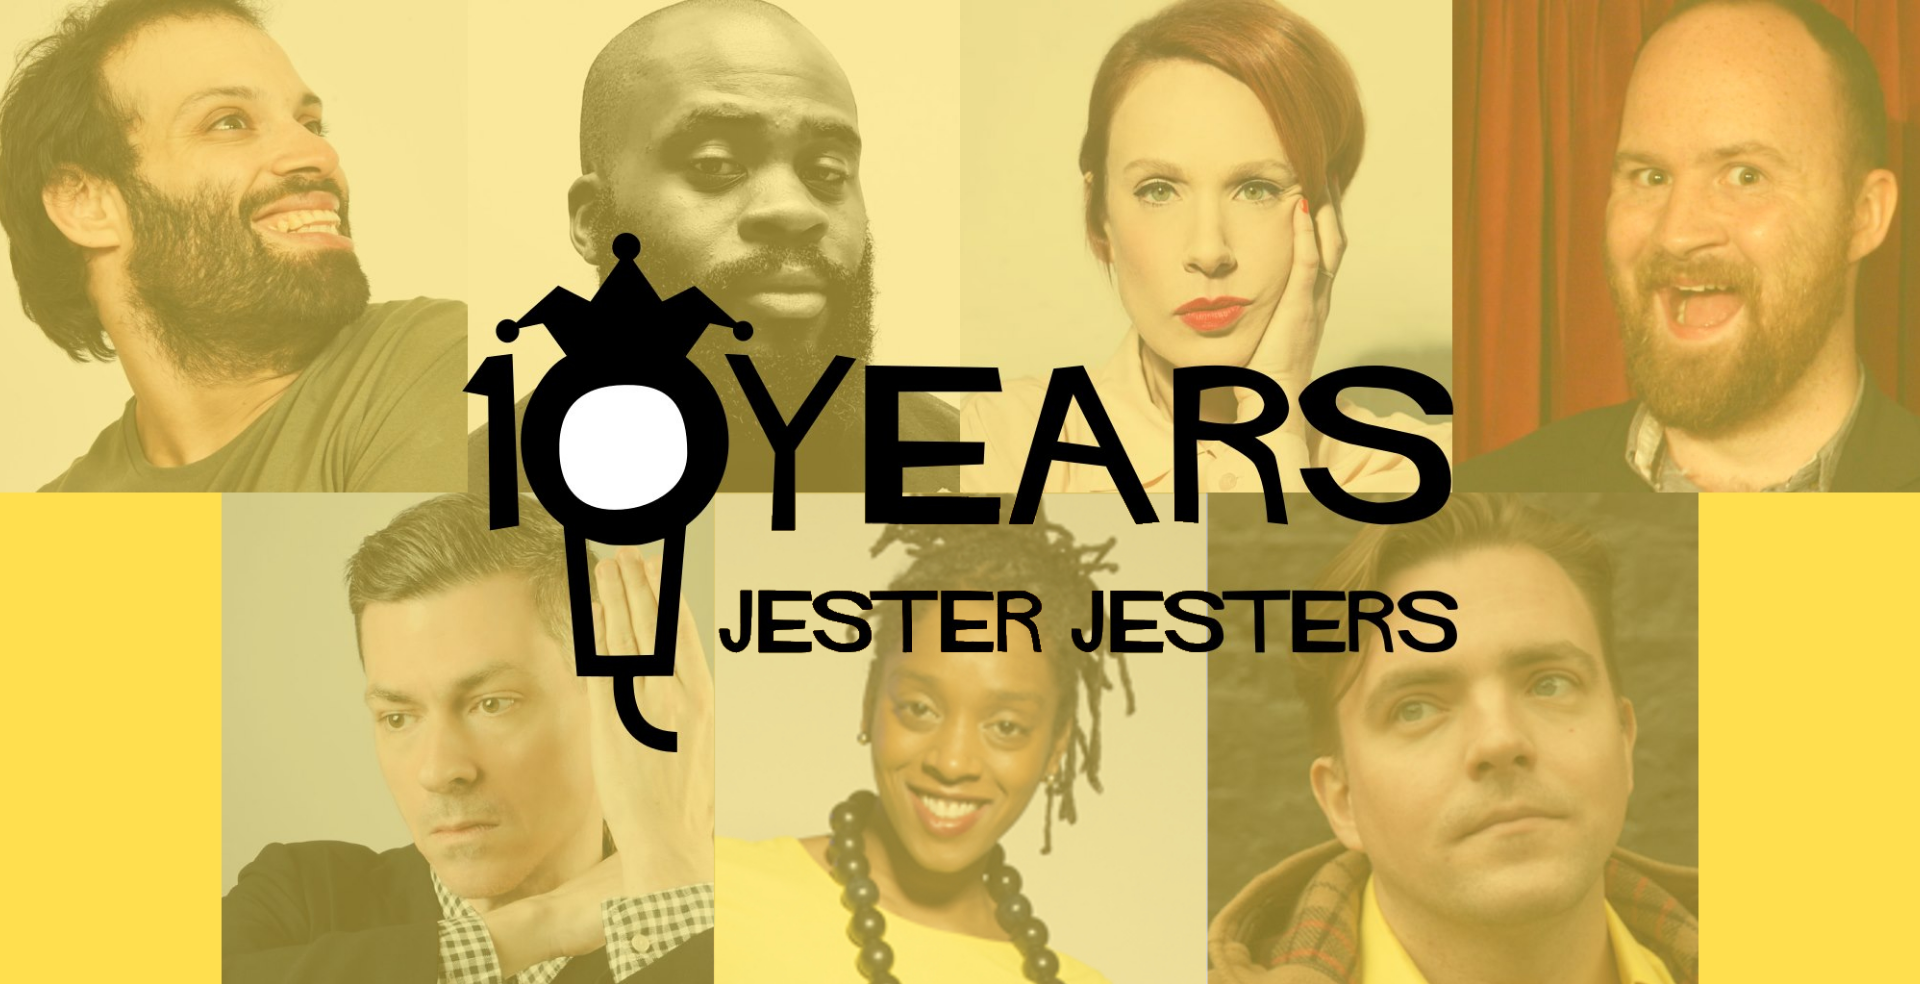 JESTER JESTERS COMEDY NIGHT 10TH BIRTHDAY with SARA BARRON, TIM RENKOW & MORE